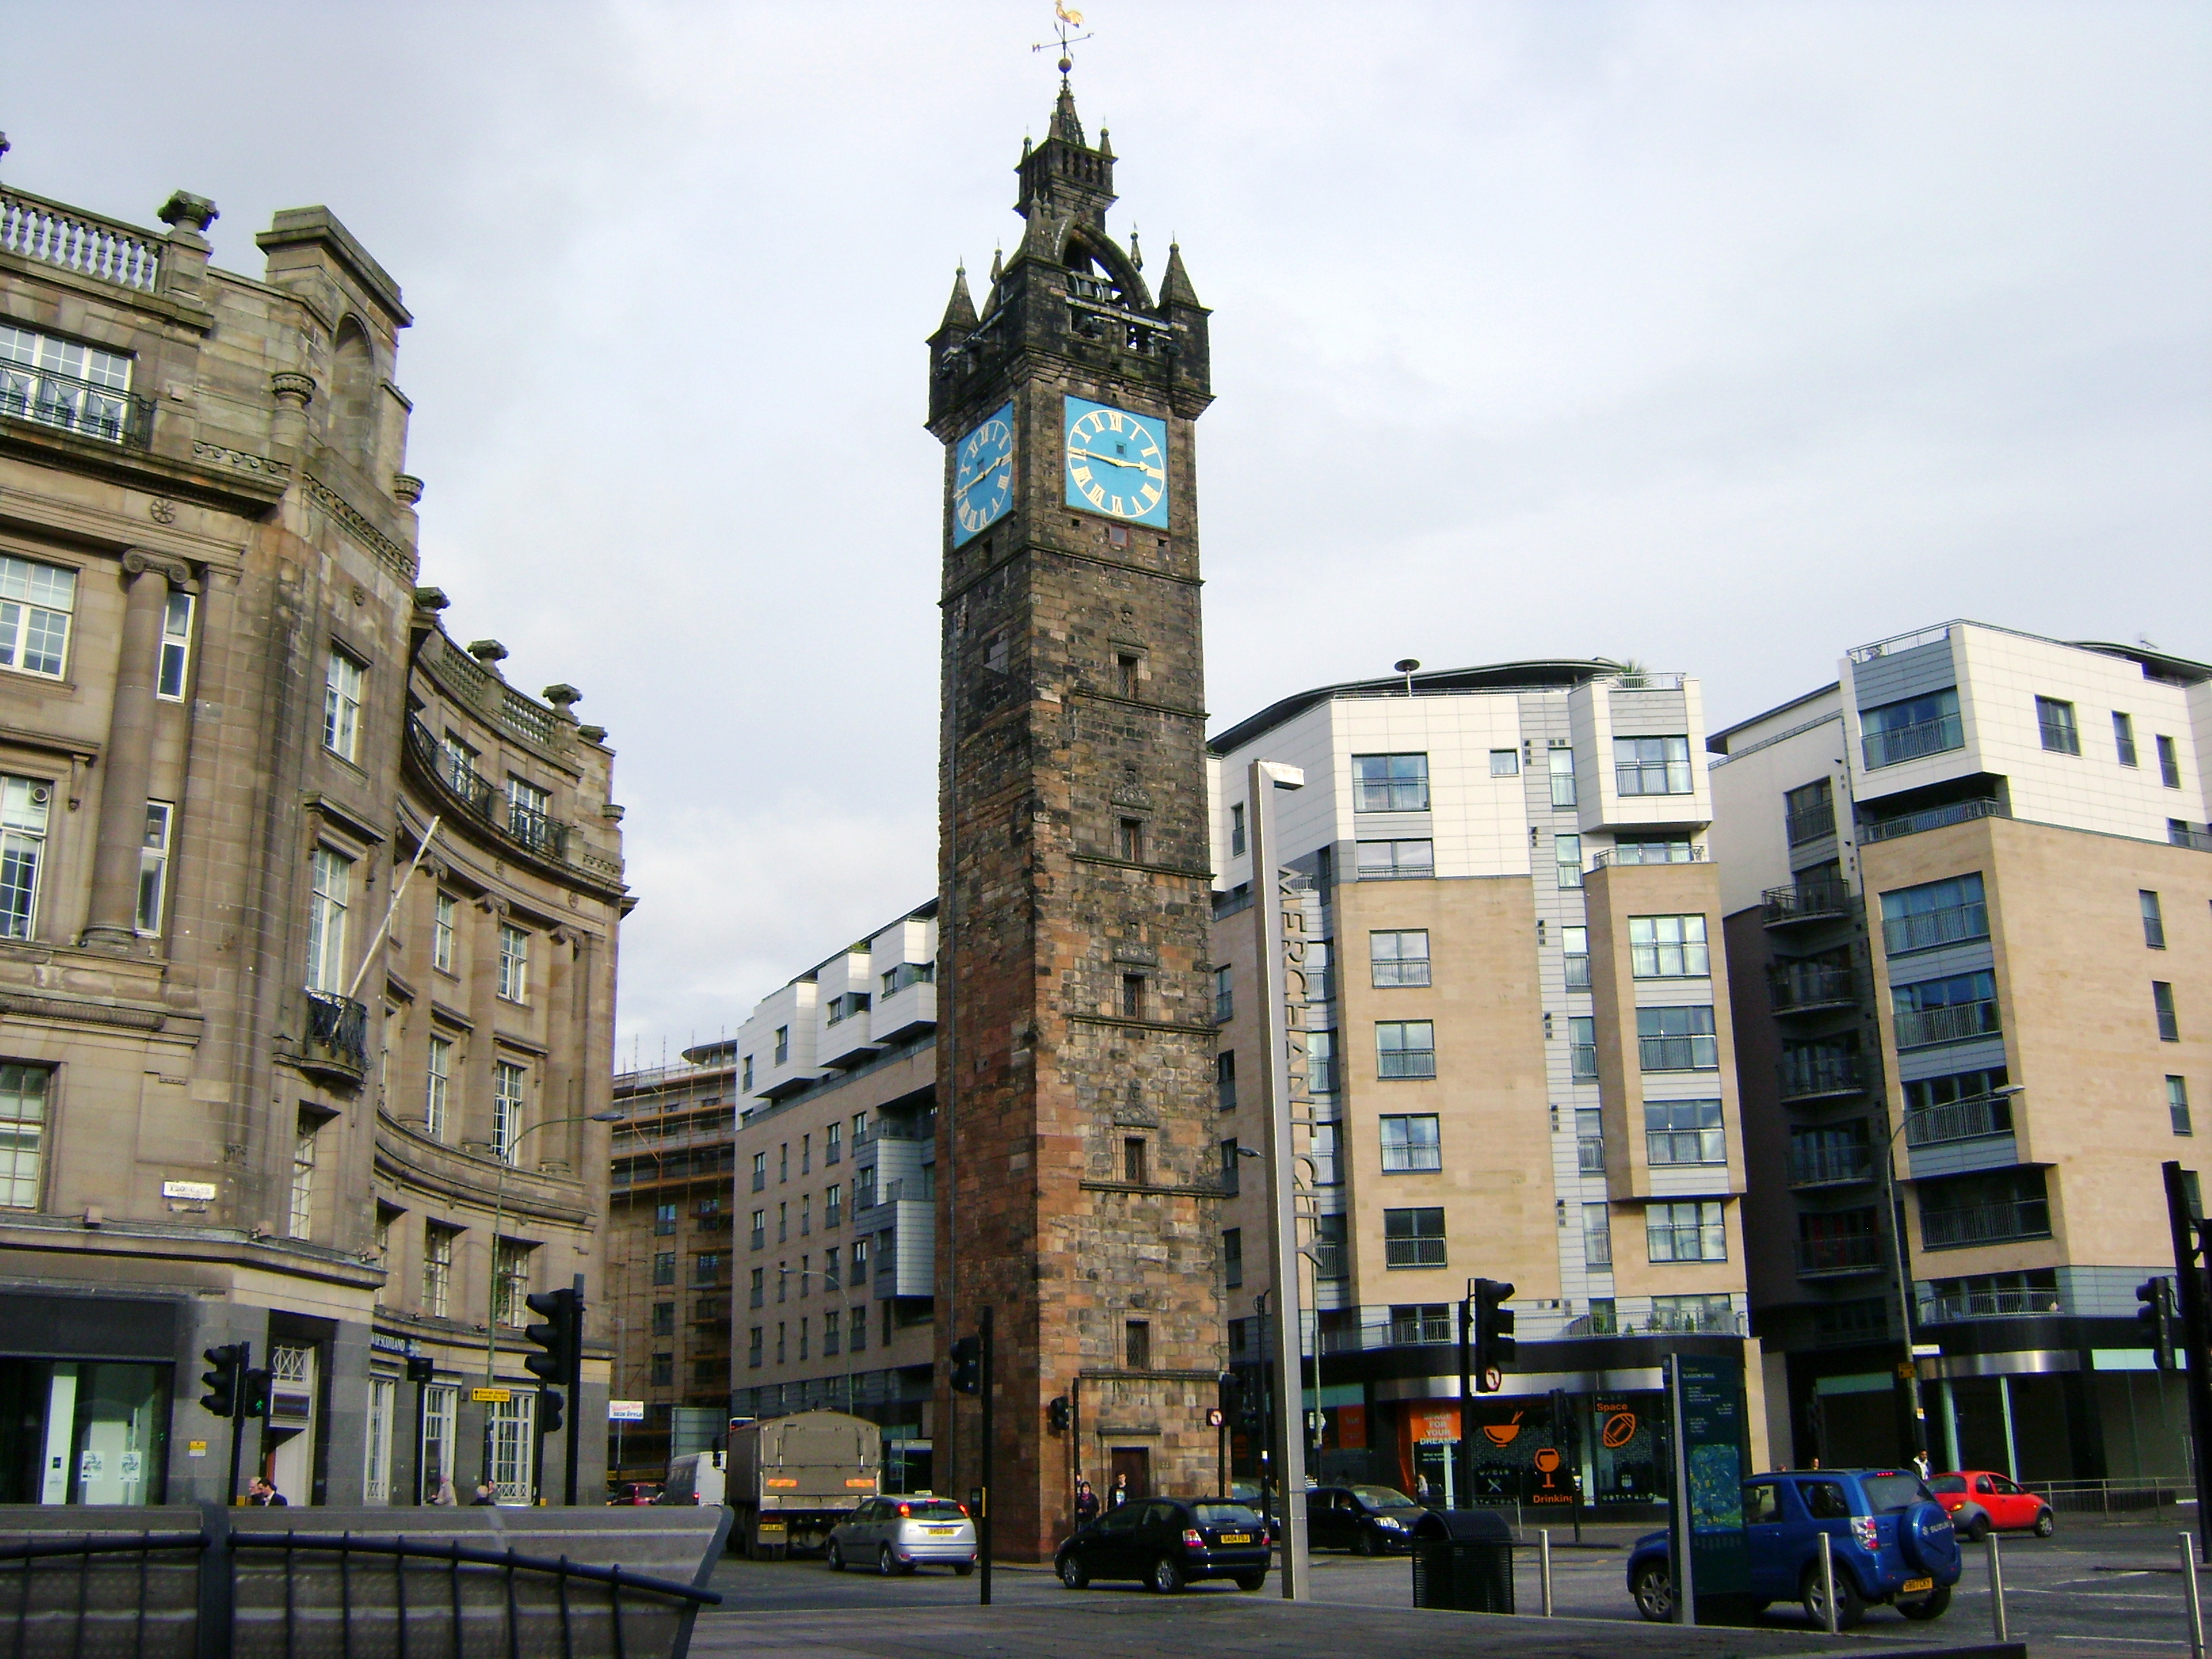 File:Glasgow Tolbooth Steeple, Glasgow.jpg - Wikimedia Commons